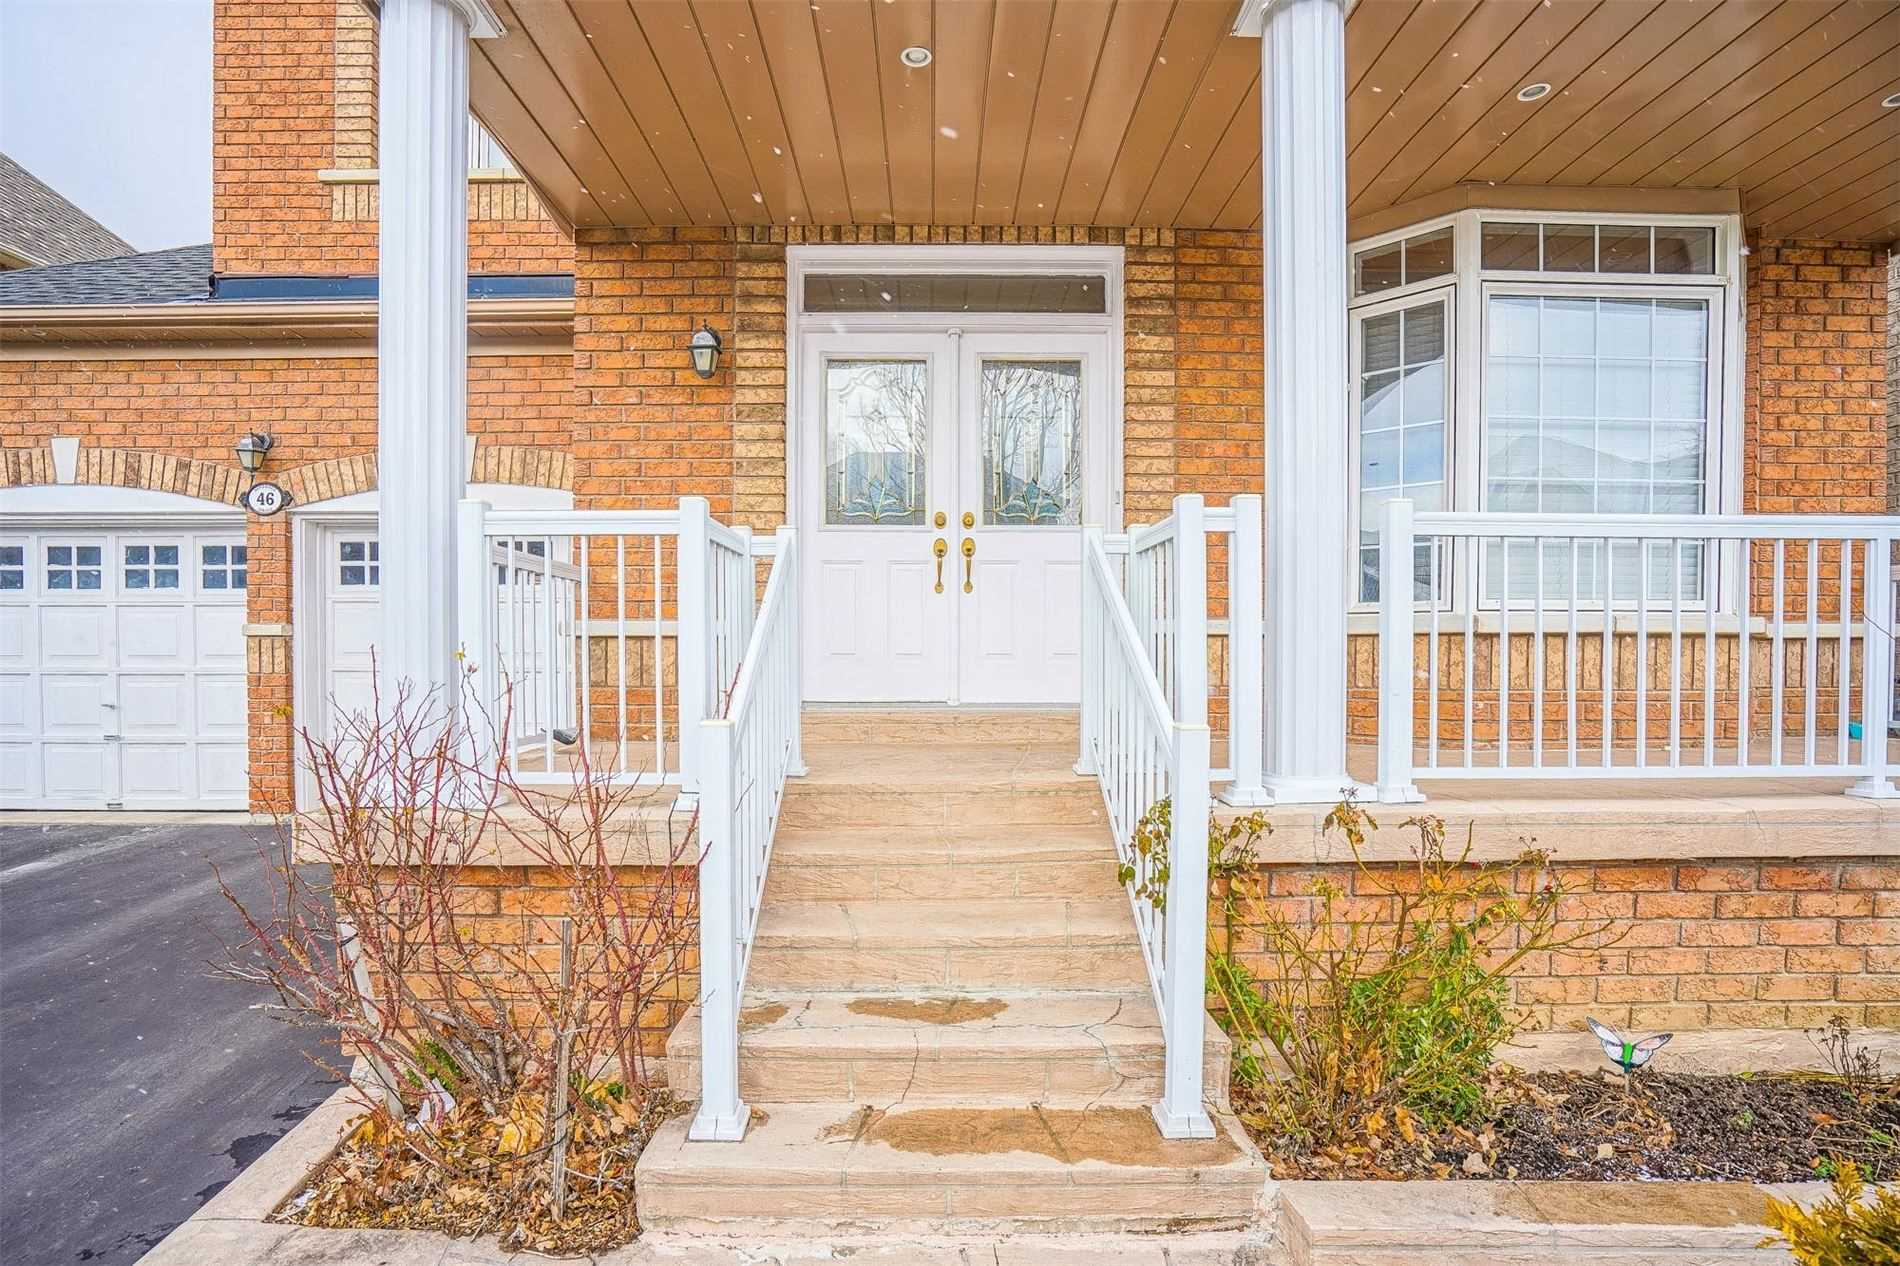 Detached house For Lease In Vaughan - 46 Dinsdale Dr, Vaughan, Ontario, Canada L4H2M2 , 4 Bedrooms Bedrooms, ,5 BathroomsBathrooms,Detached,For Lease,Dinsdale